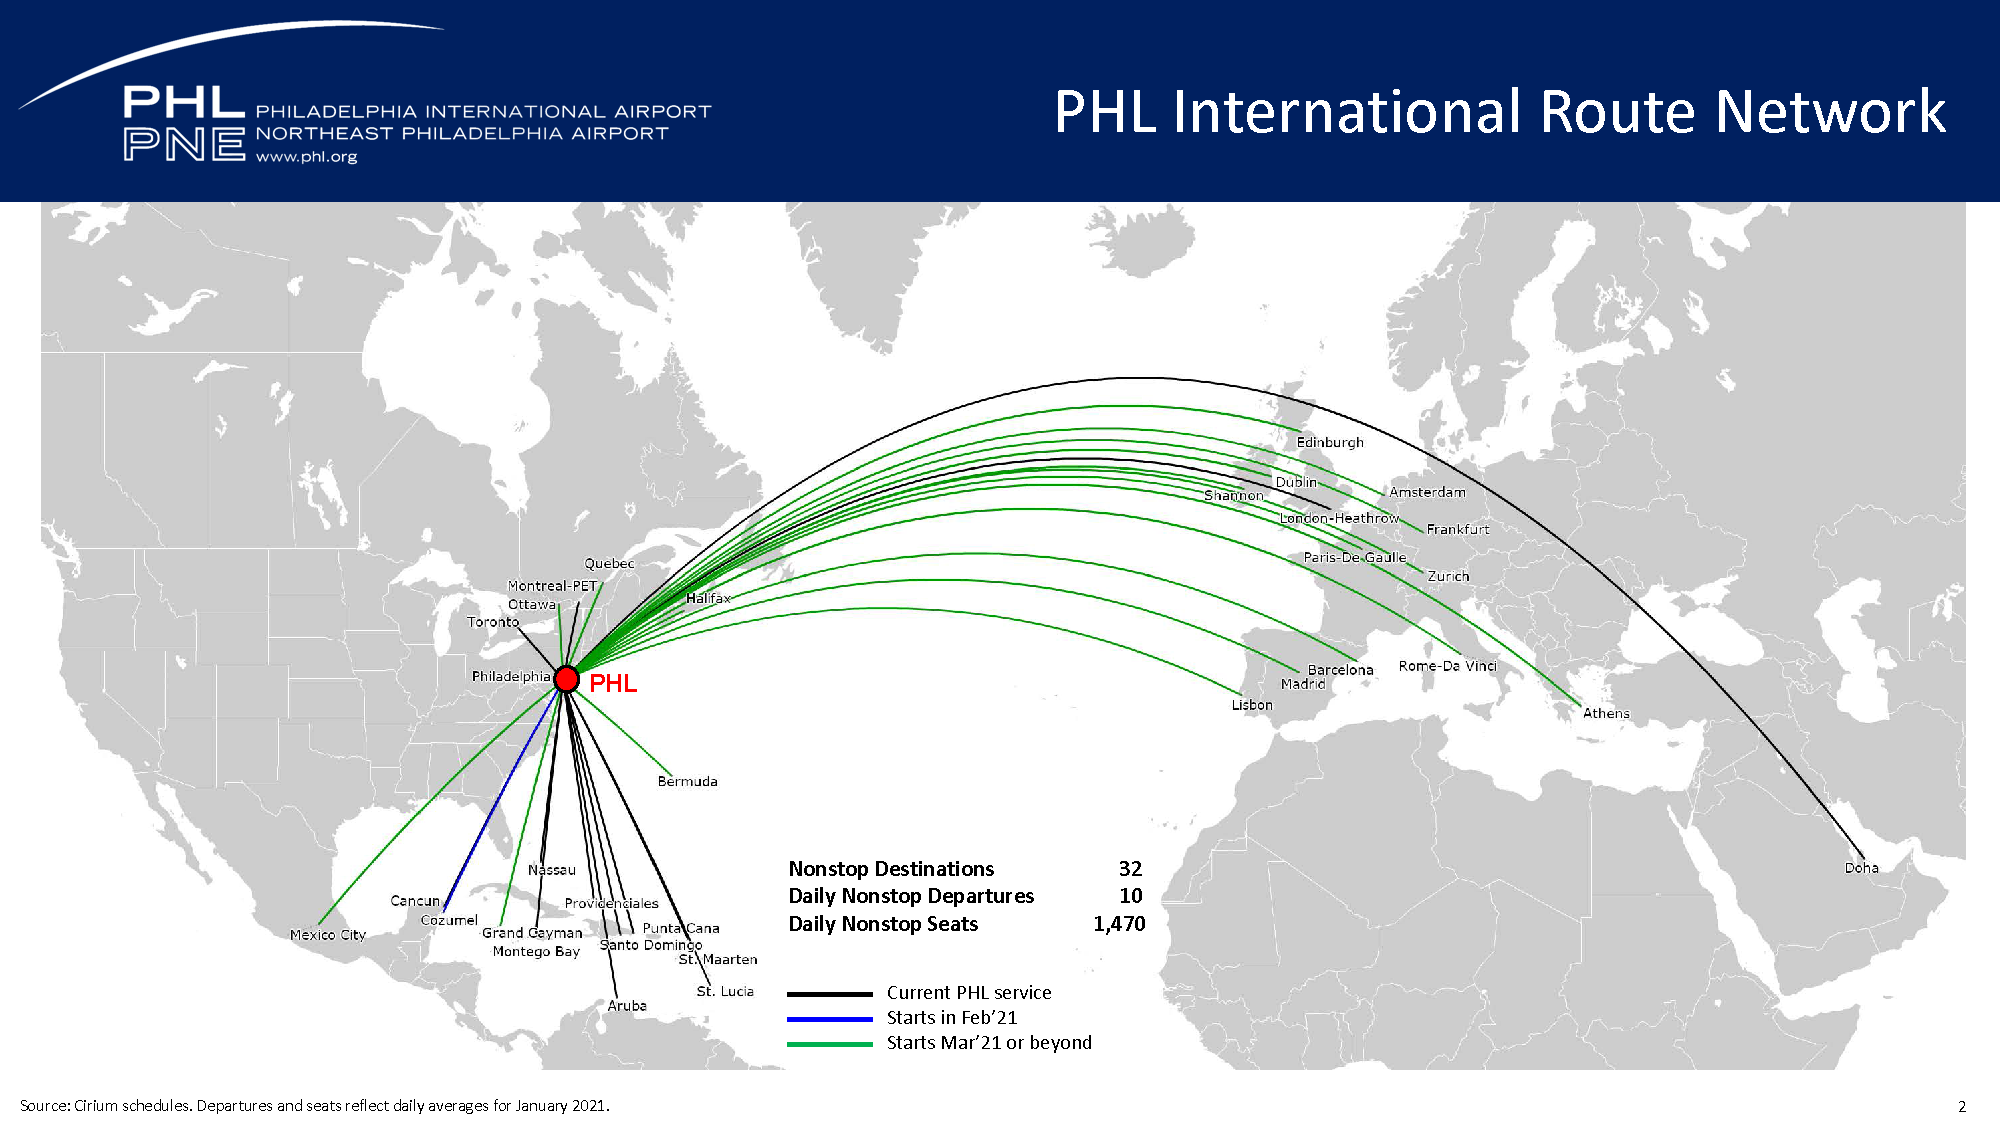 PHL International Route Network